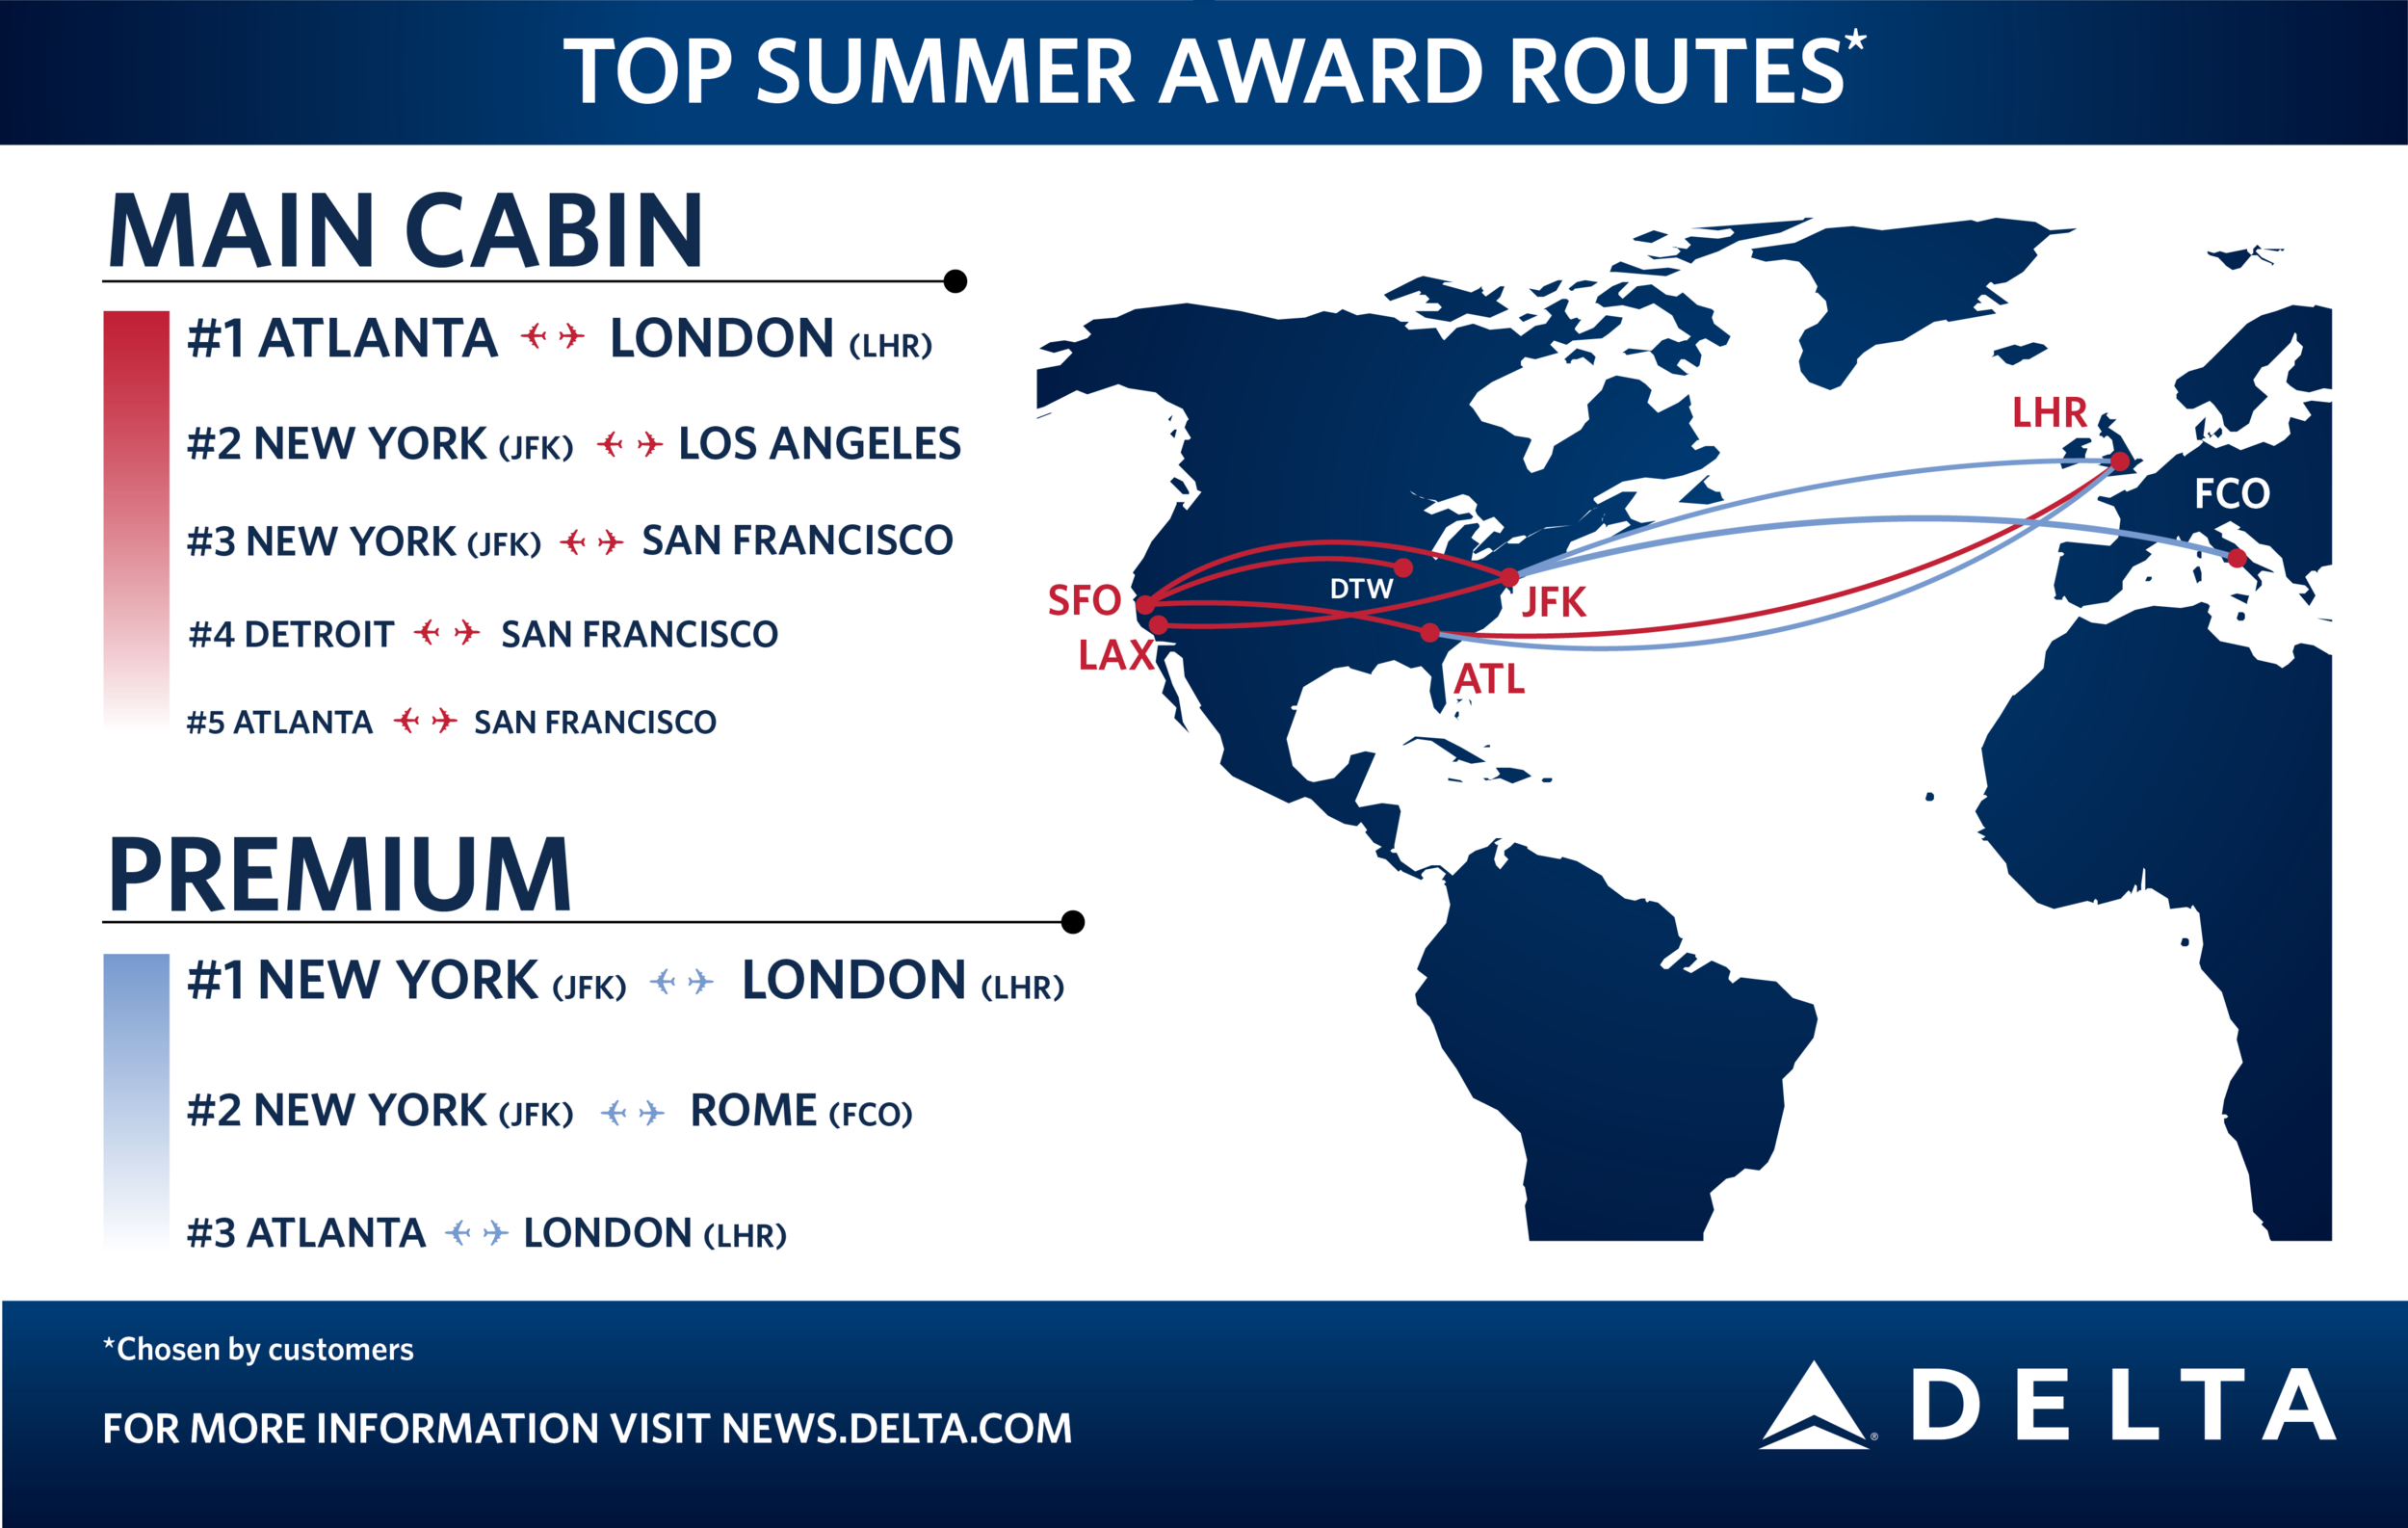 A few of the most popular SkyMiles Award flights (as of summer 2016). (Photo: Delta)